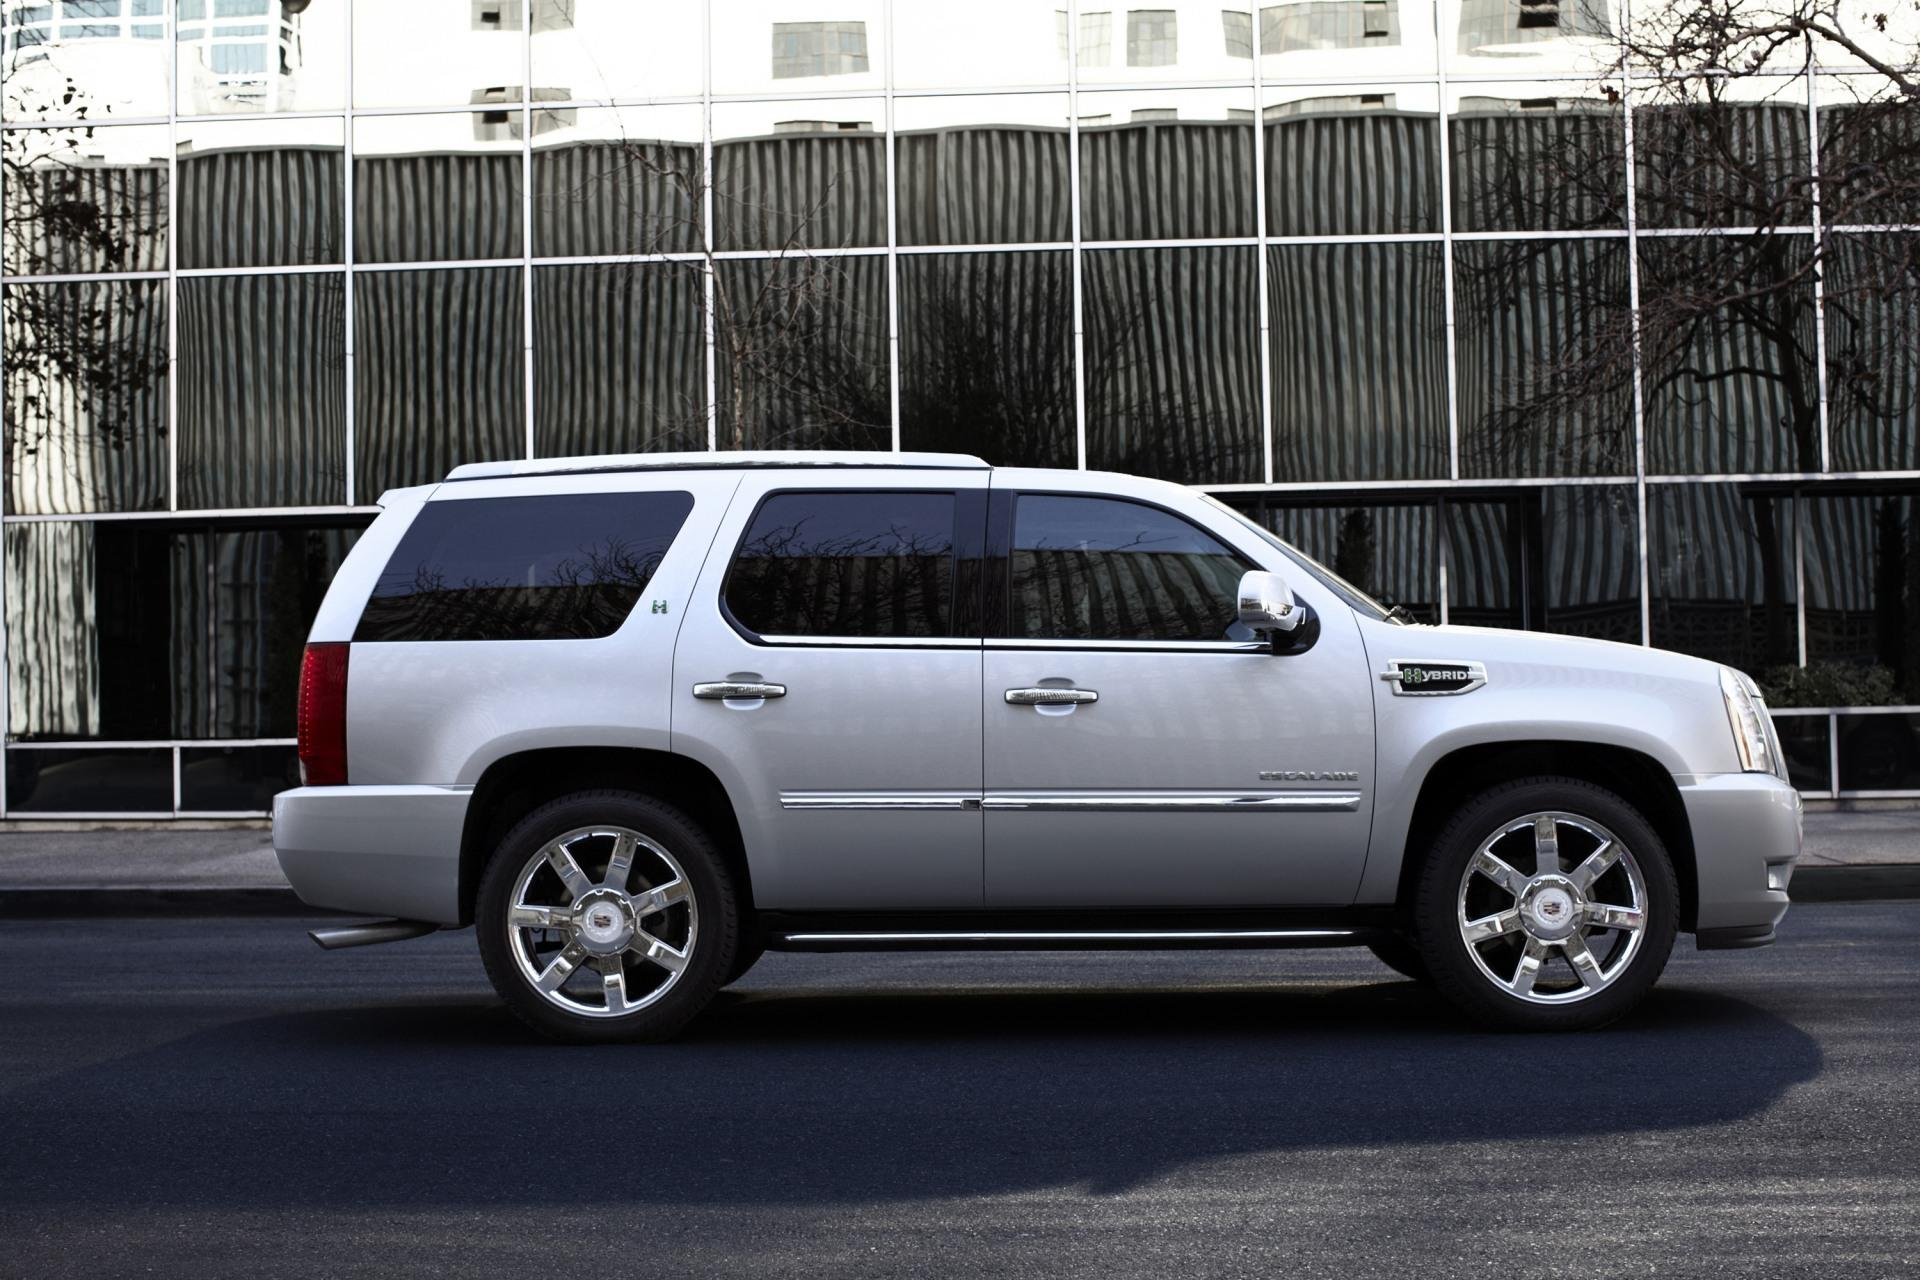 2011 Cadillac Escalade News and Information